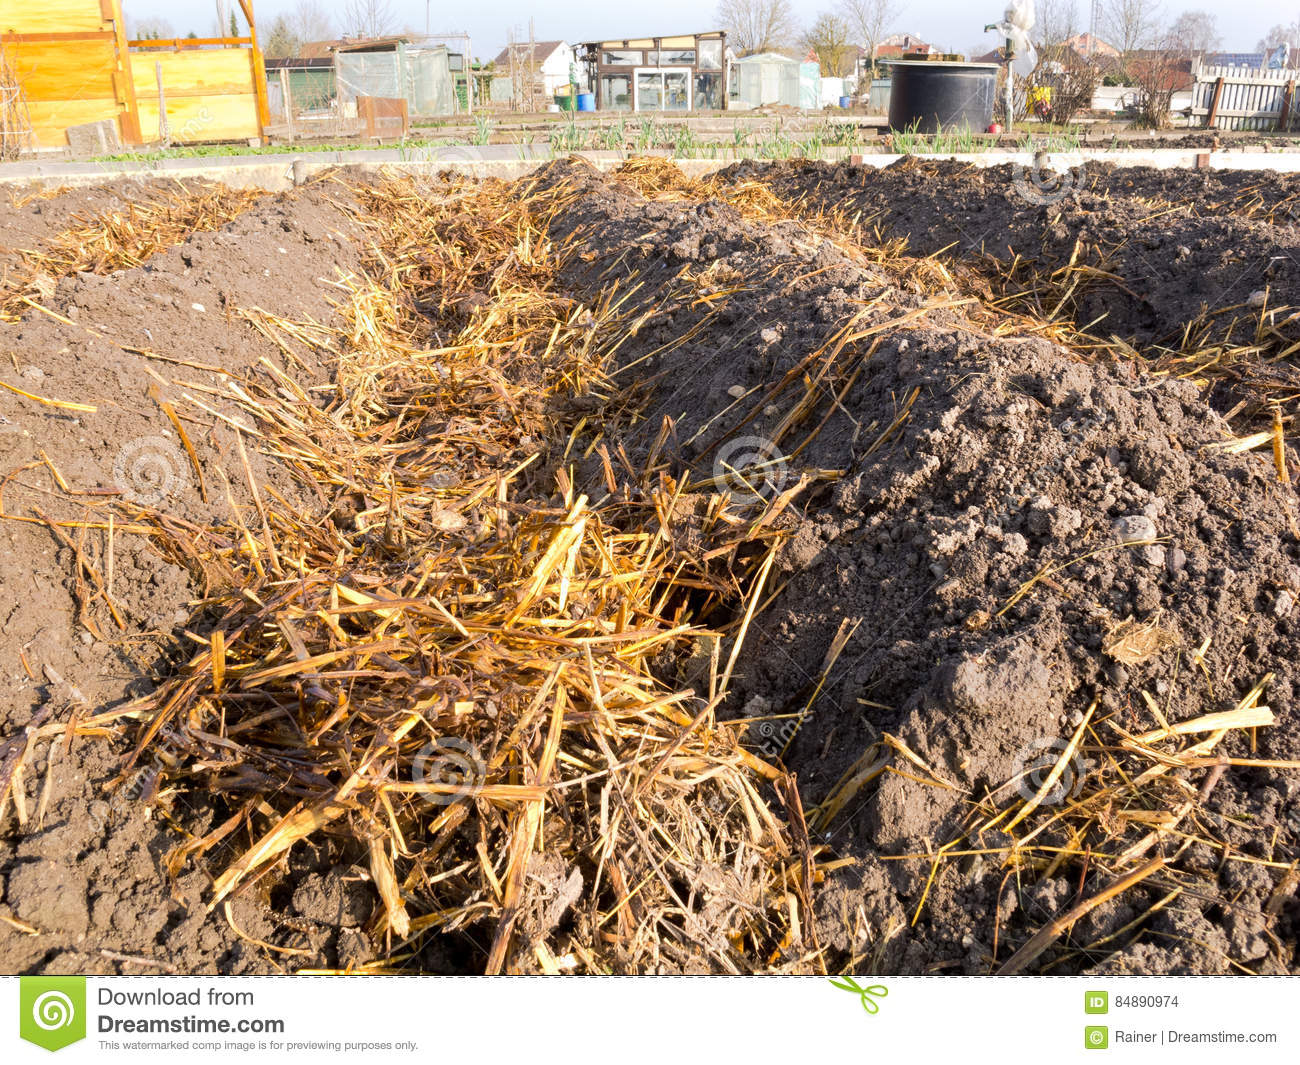 Sheep Dung On Vegetable Garden Soil Stock Photo - Image of garden ...